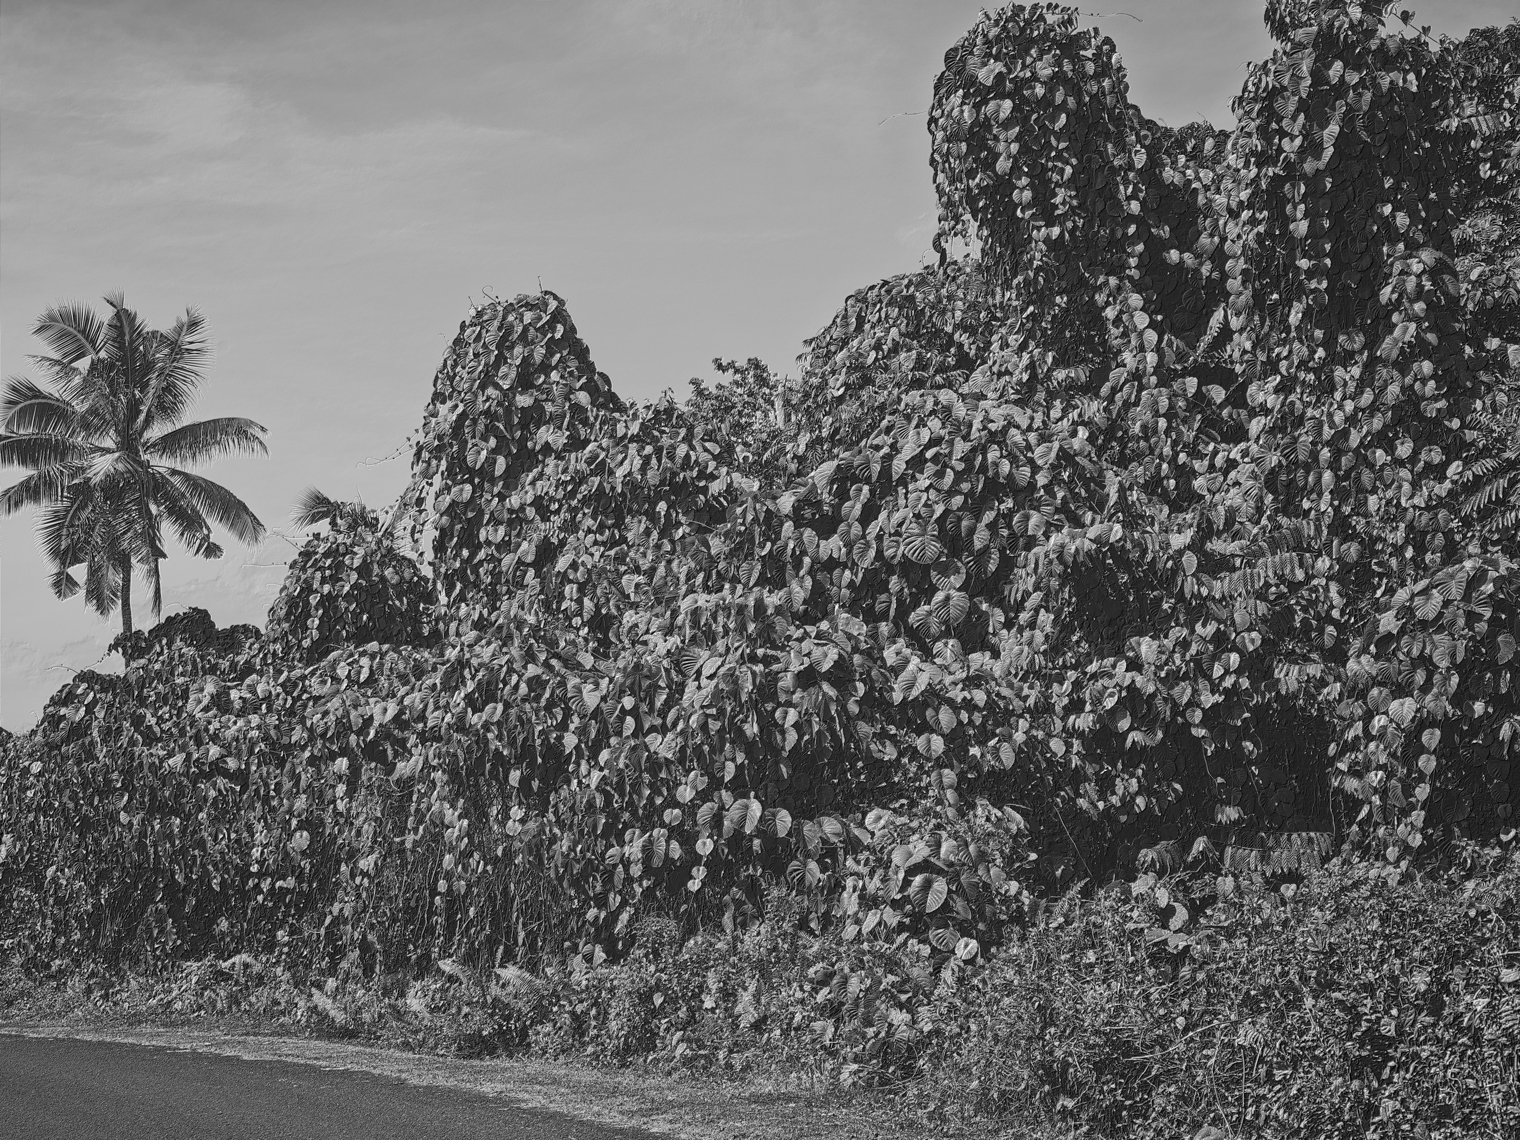 Jon Wyatt Photography - Fault Line VIII - A tsunami of vegetation - invasive vines in samoa